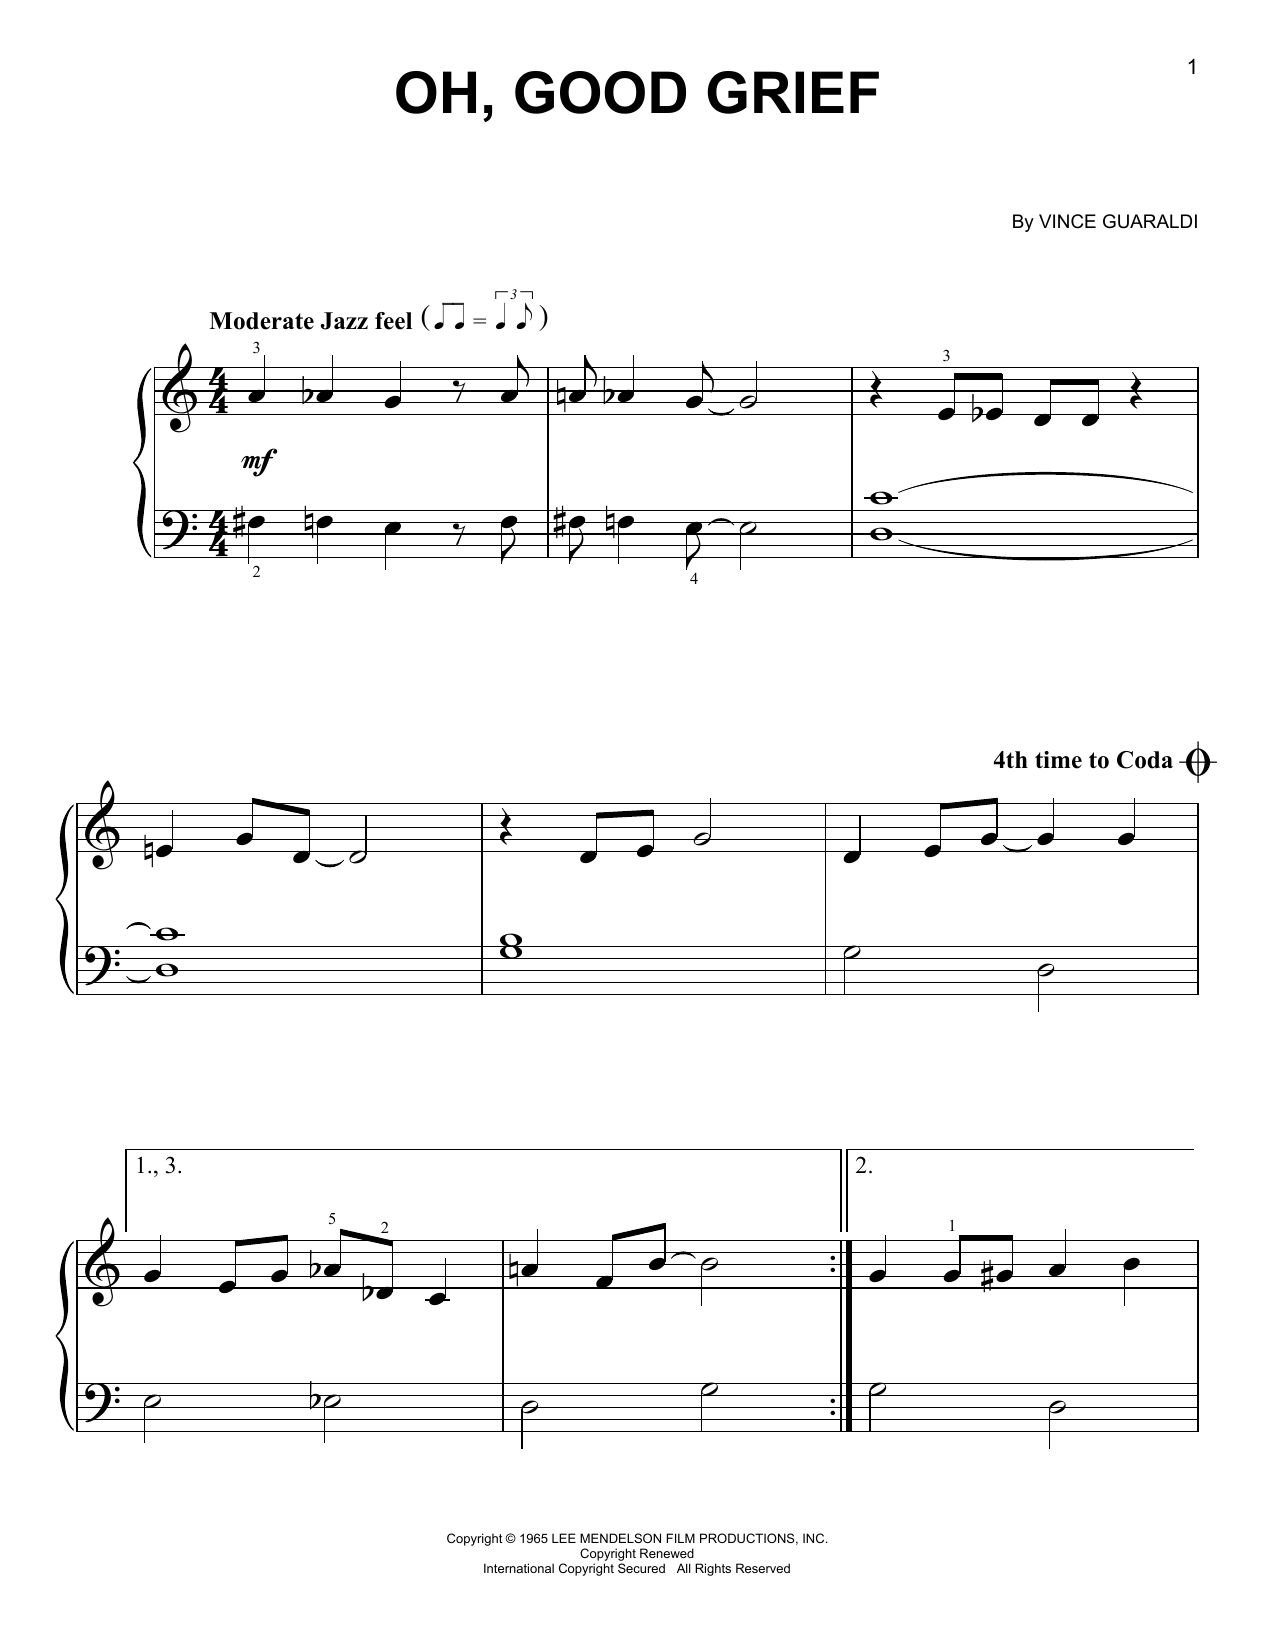 Oh, Good Grief Sheet Music